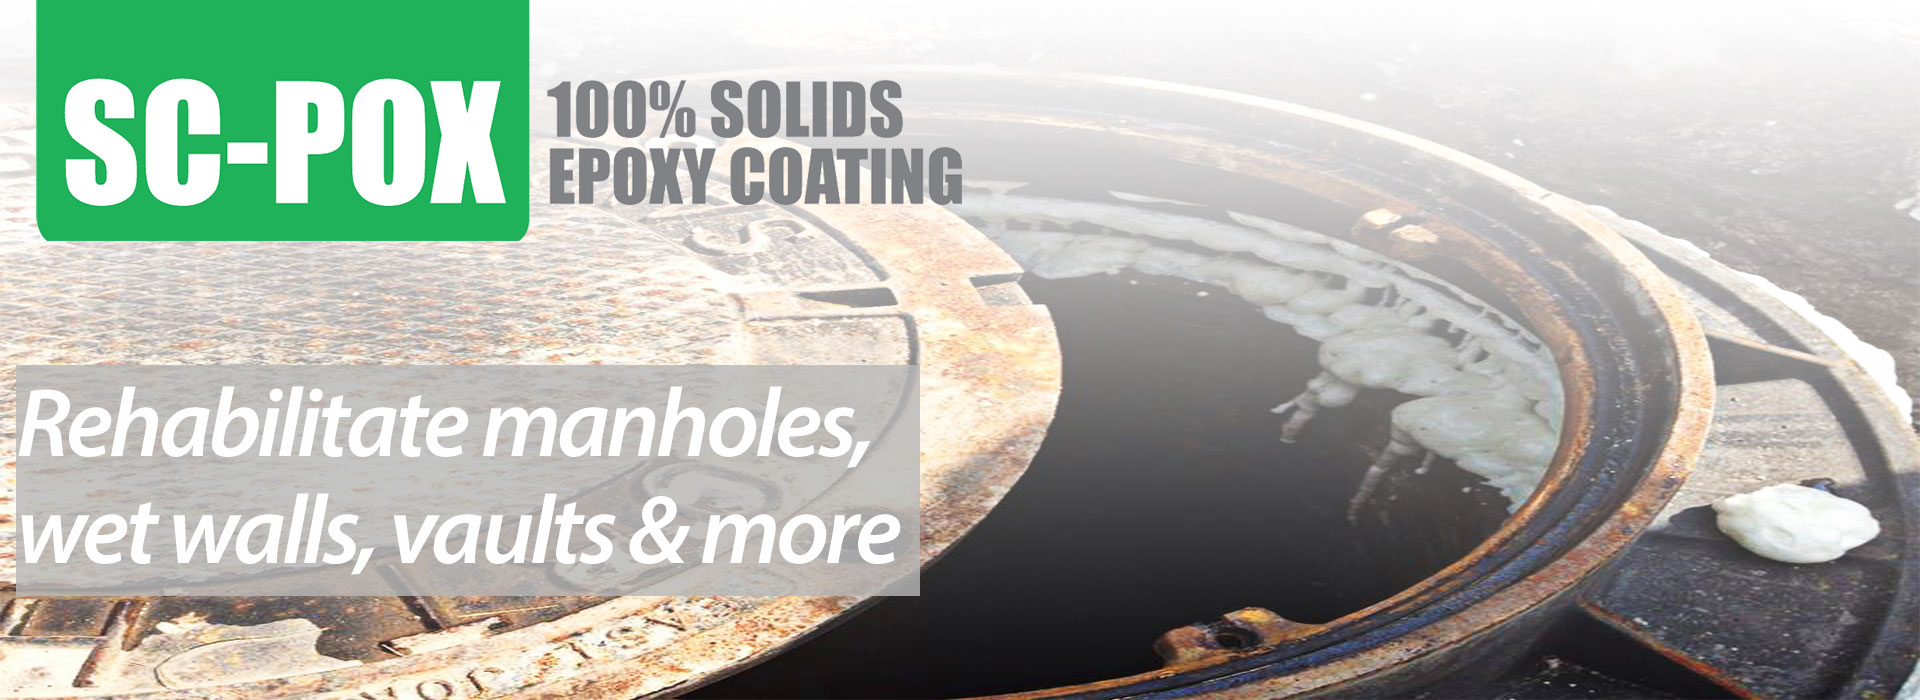 SC-POX 100% Solids Epoxy Coating - Rehabilitate manholes, wet walls, vaults & more